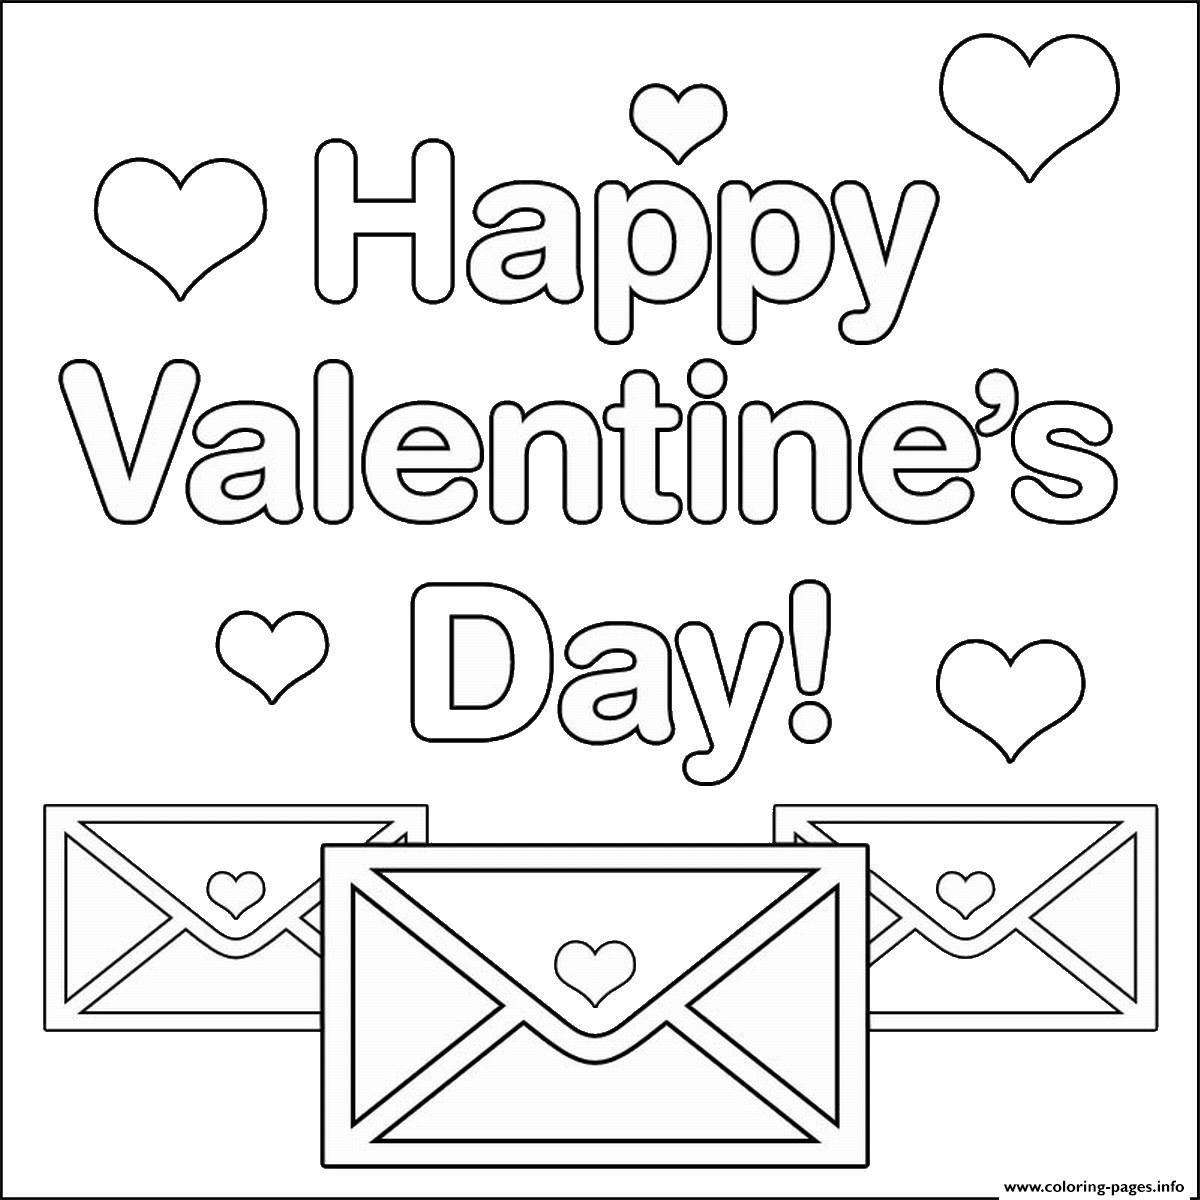 Happy Valentines Day Letters With Hearts Coloring Pages